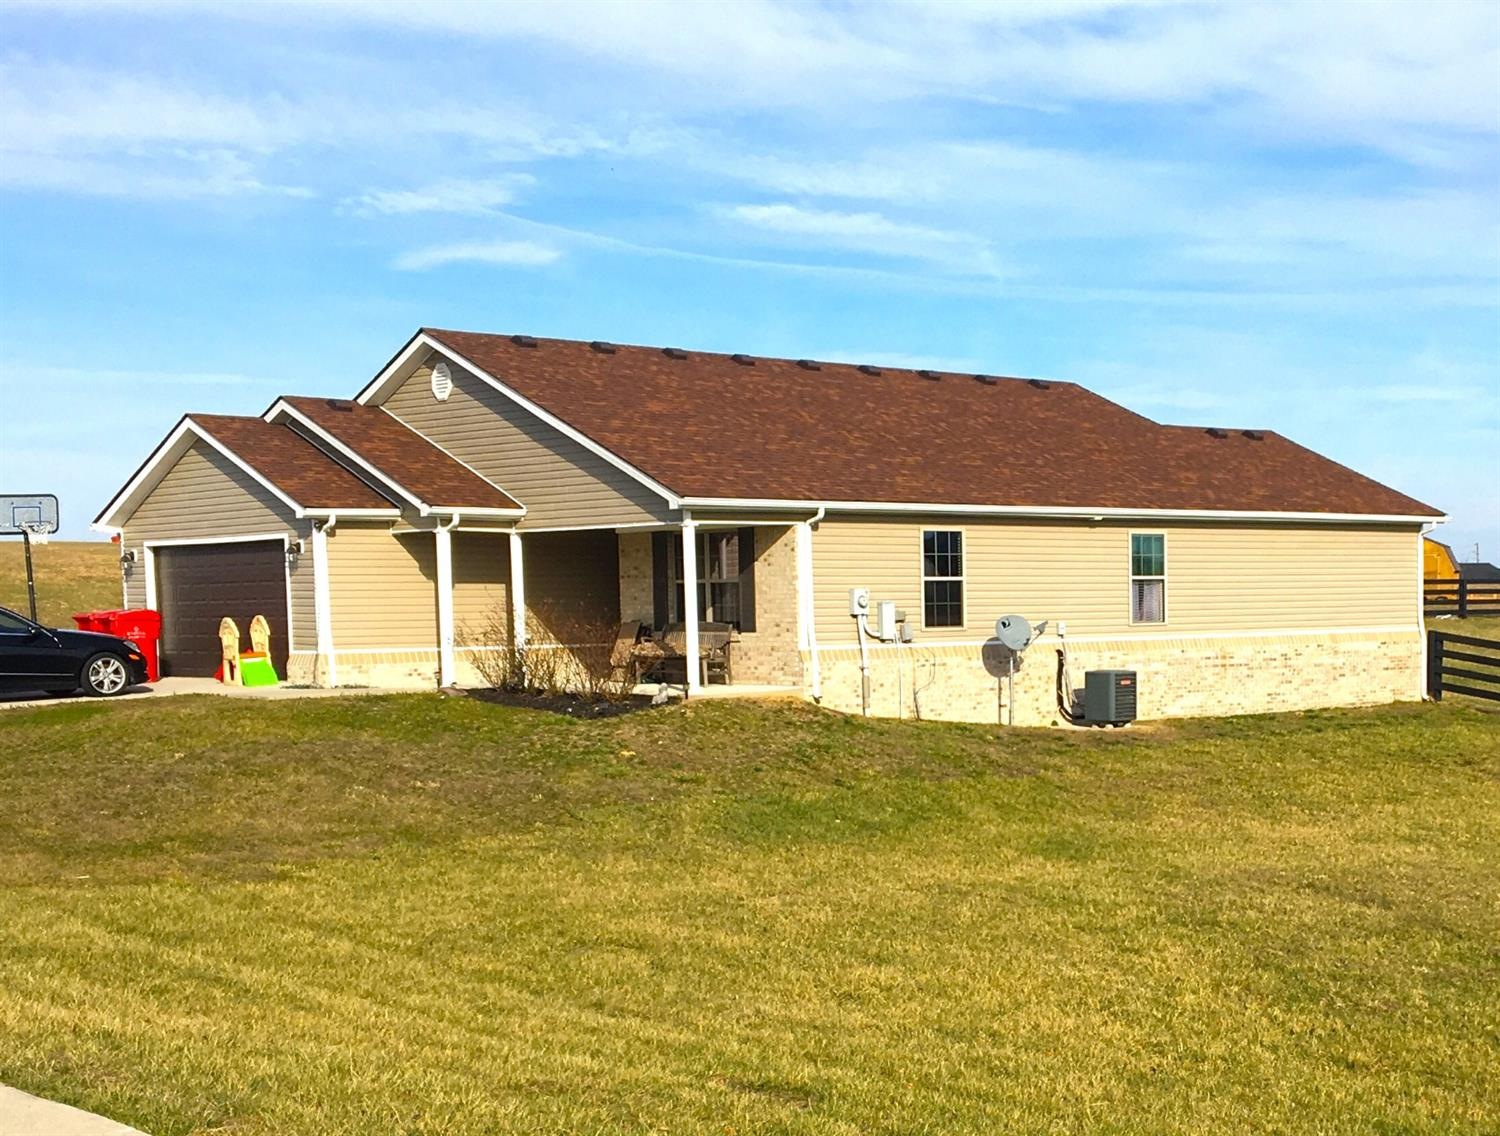 133 Crossing View Dr, Berea, KY 40403